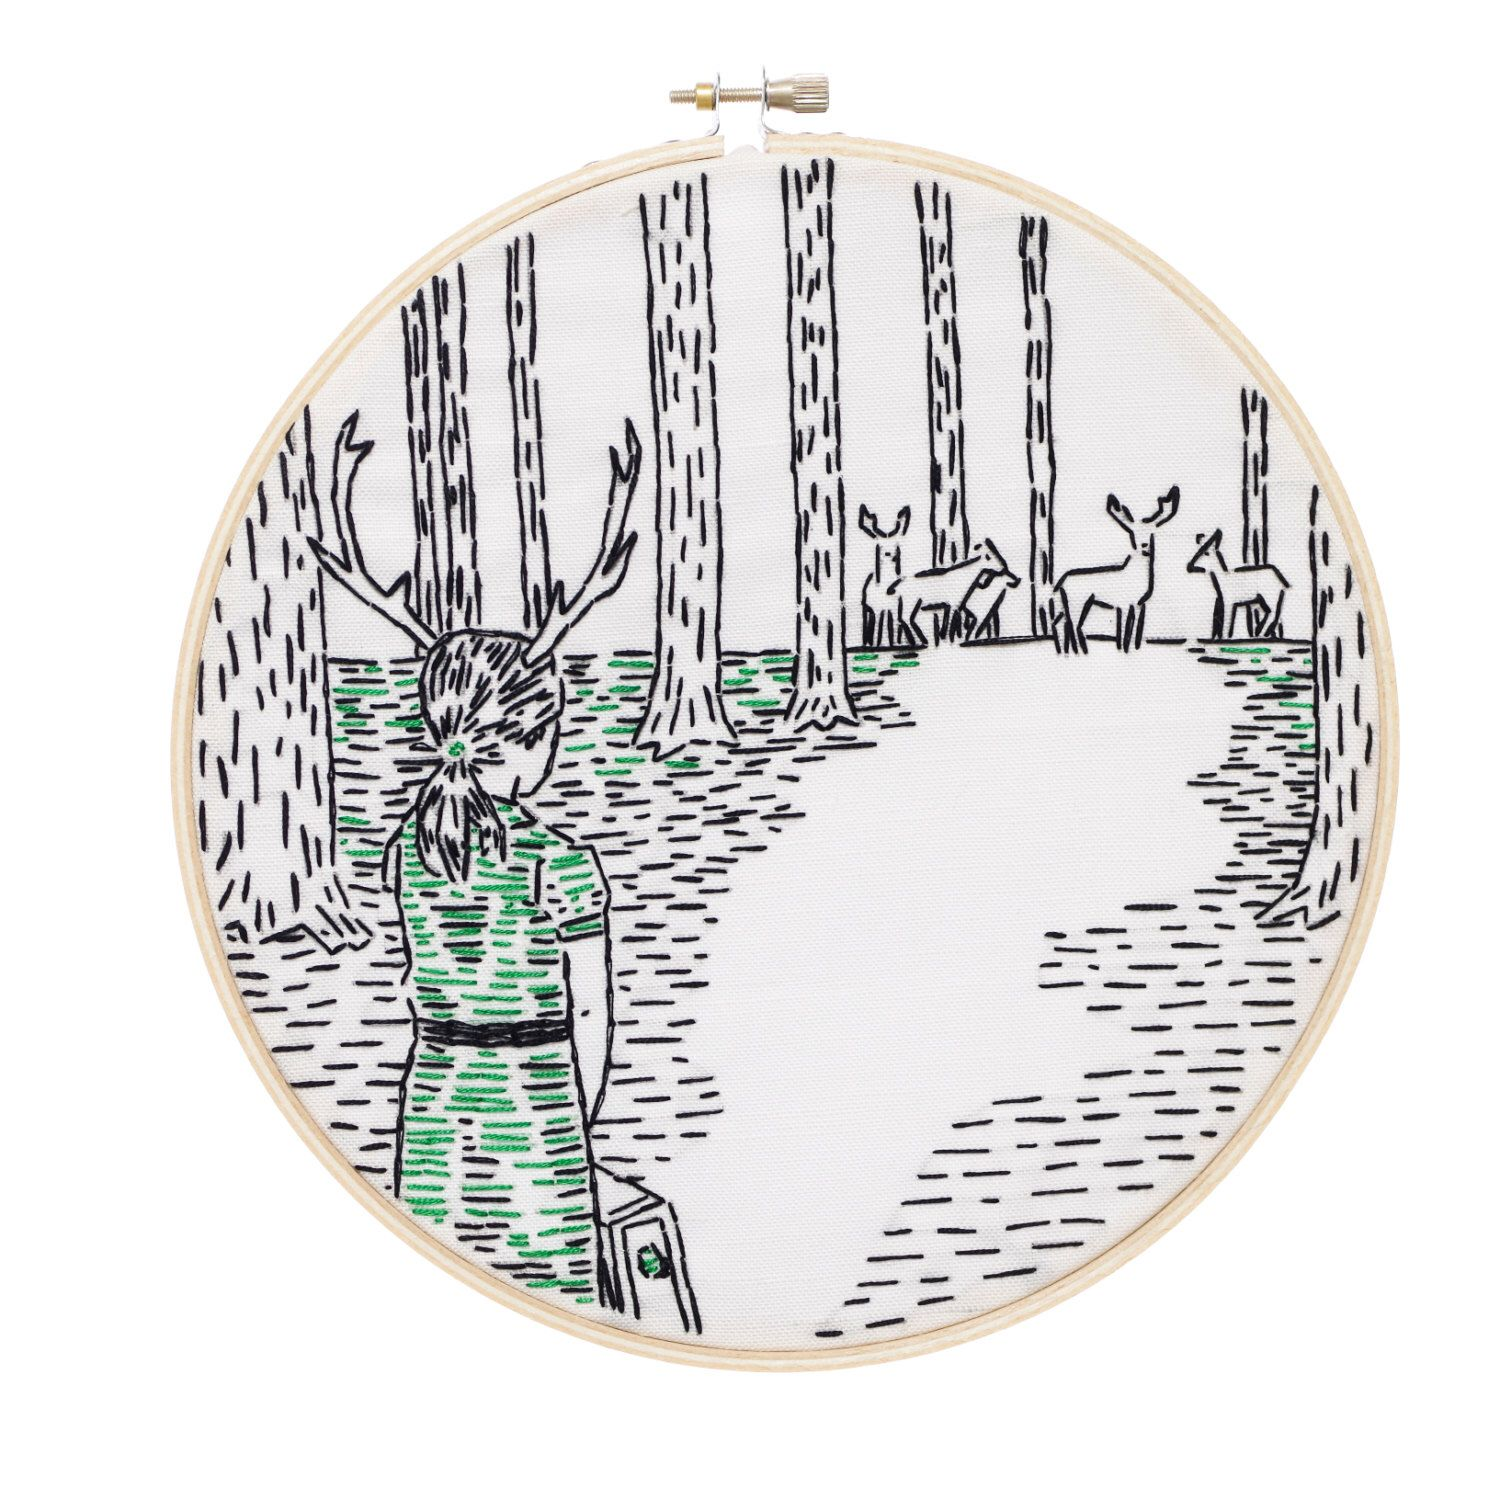 Coming Home Embroidery Kit by studiomme on Etsy https://www.etsy.com/listing/181035500/coming-home-embroidery-kit